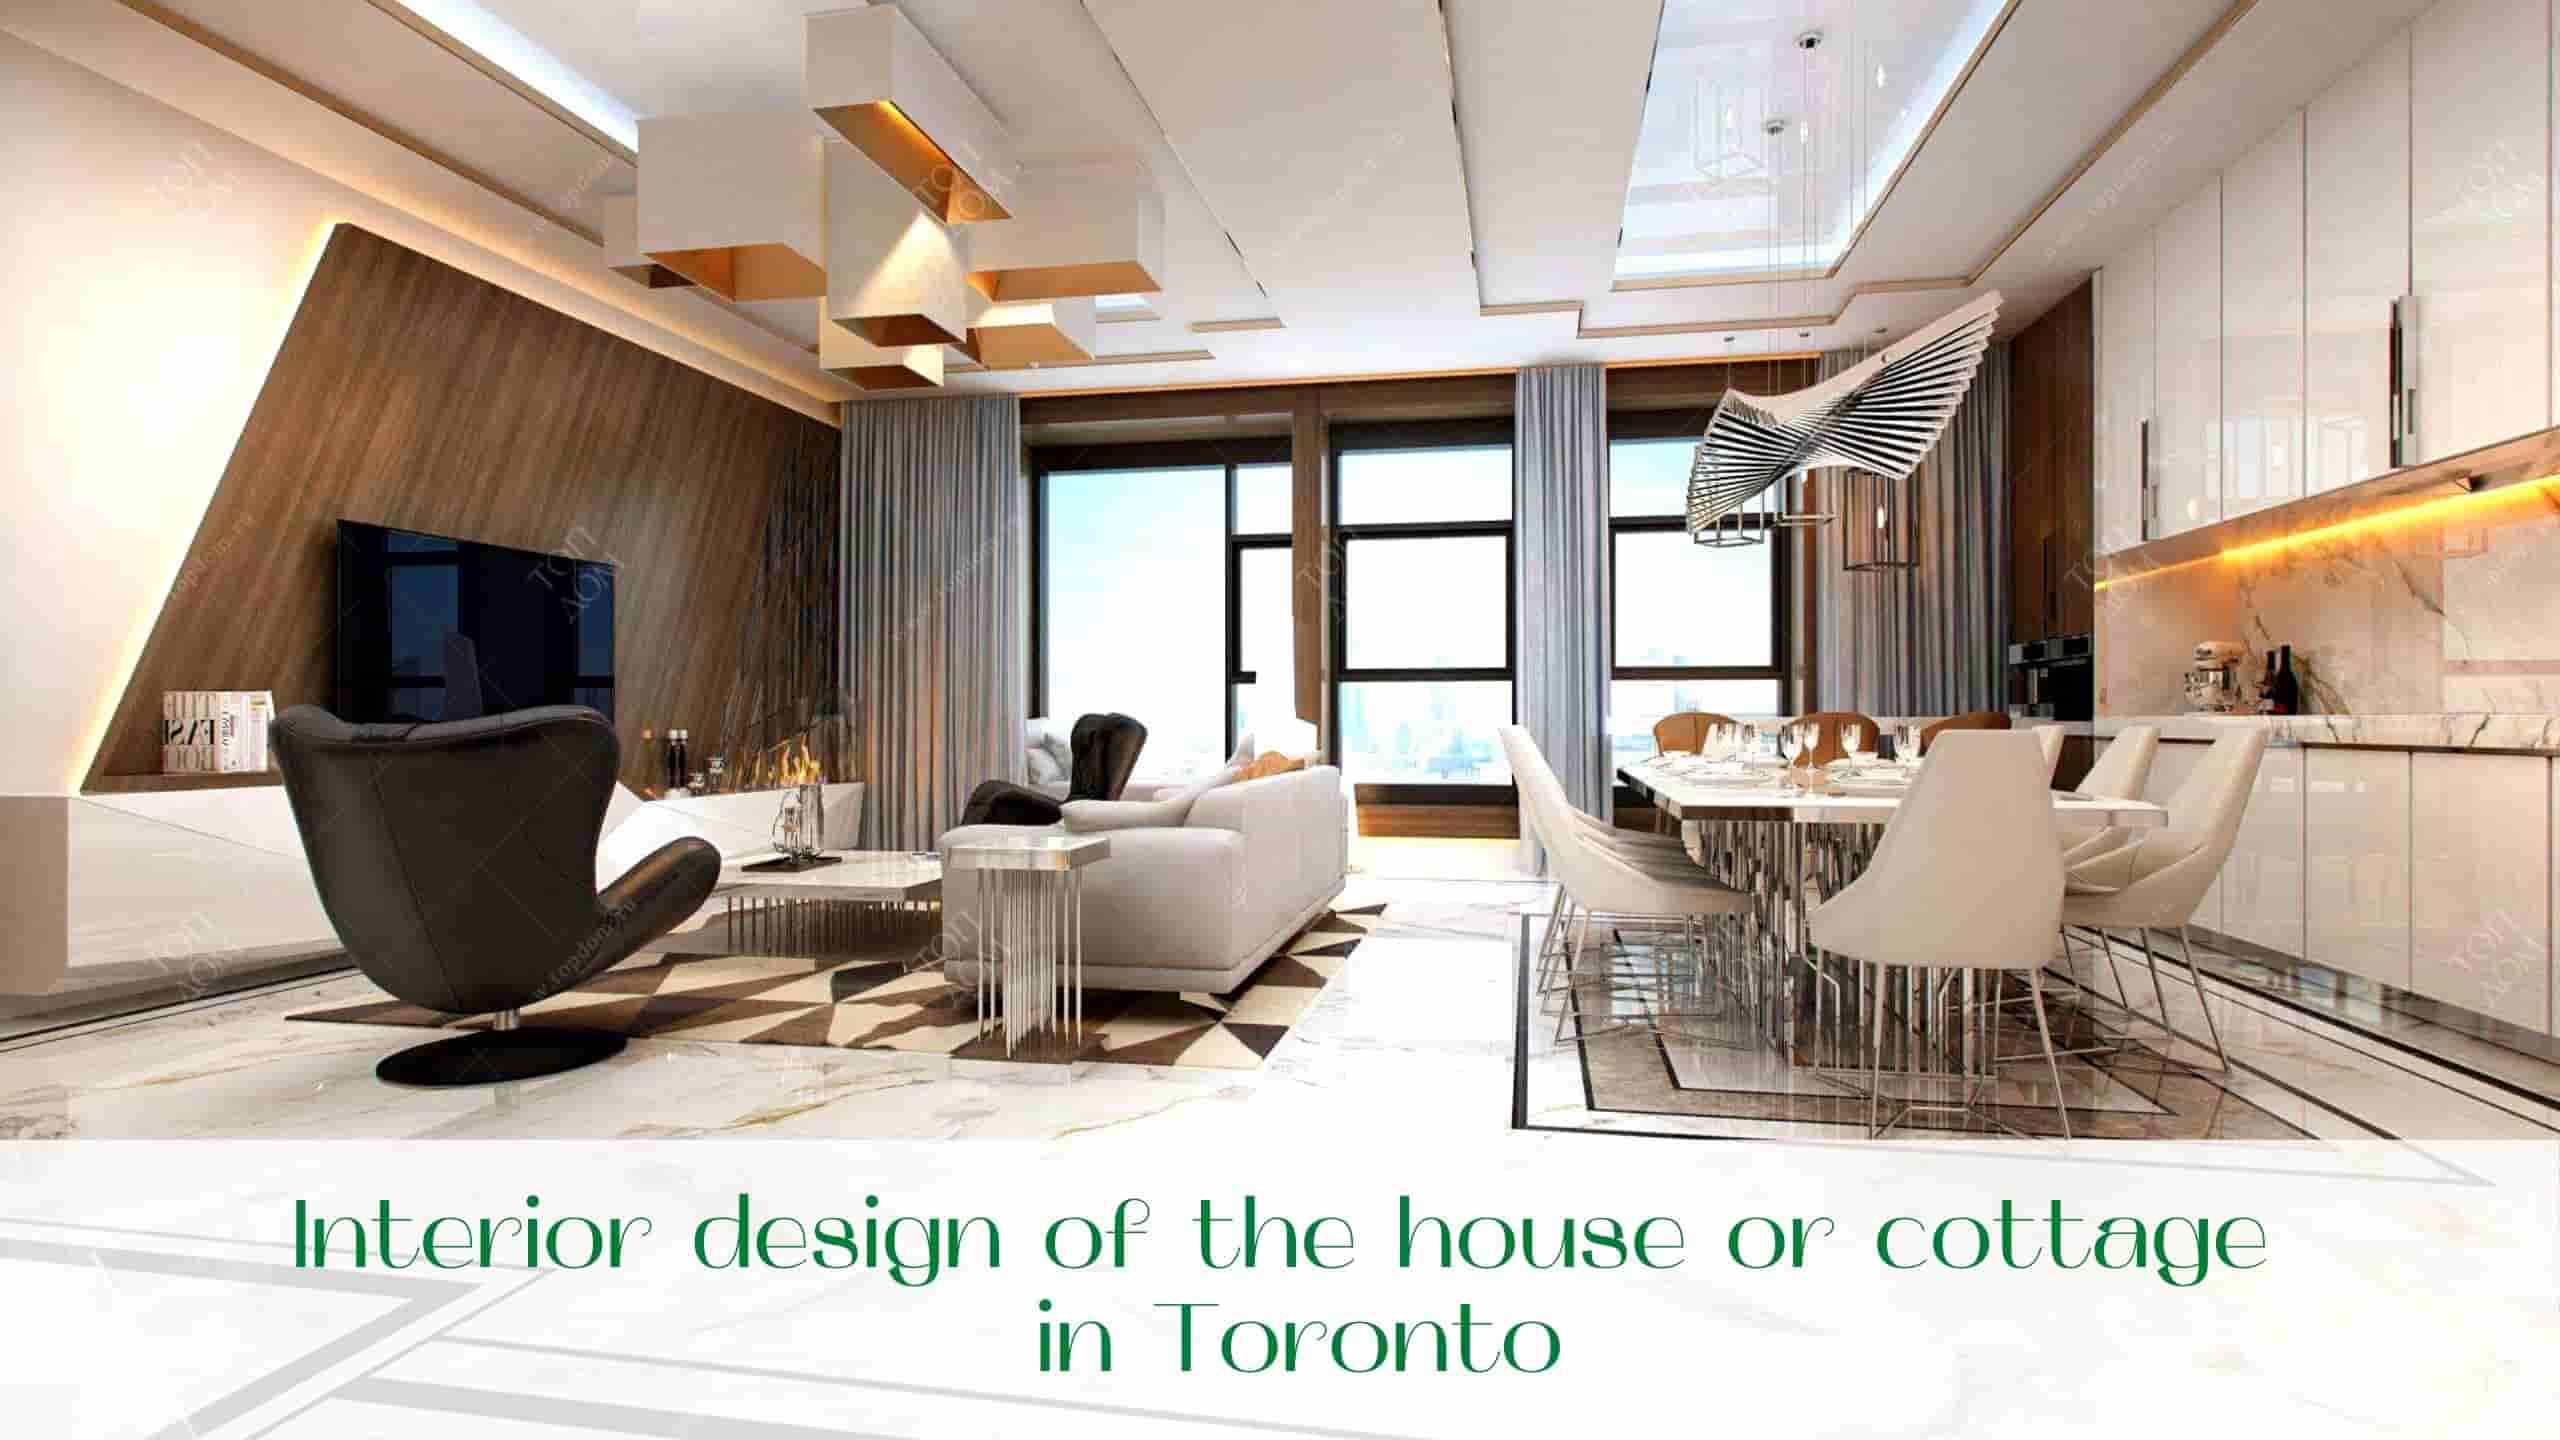 image-All-about-interior-design-of-the-house-or-cottage-in-Toronto-and-Ontario